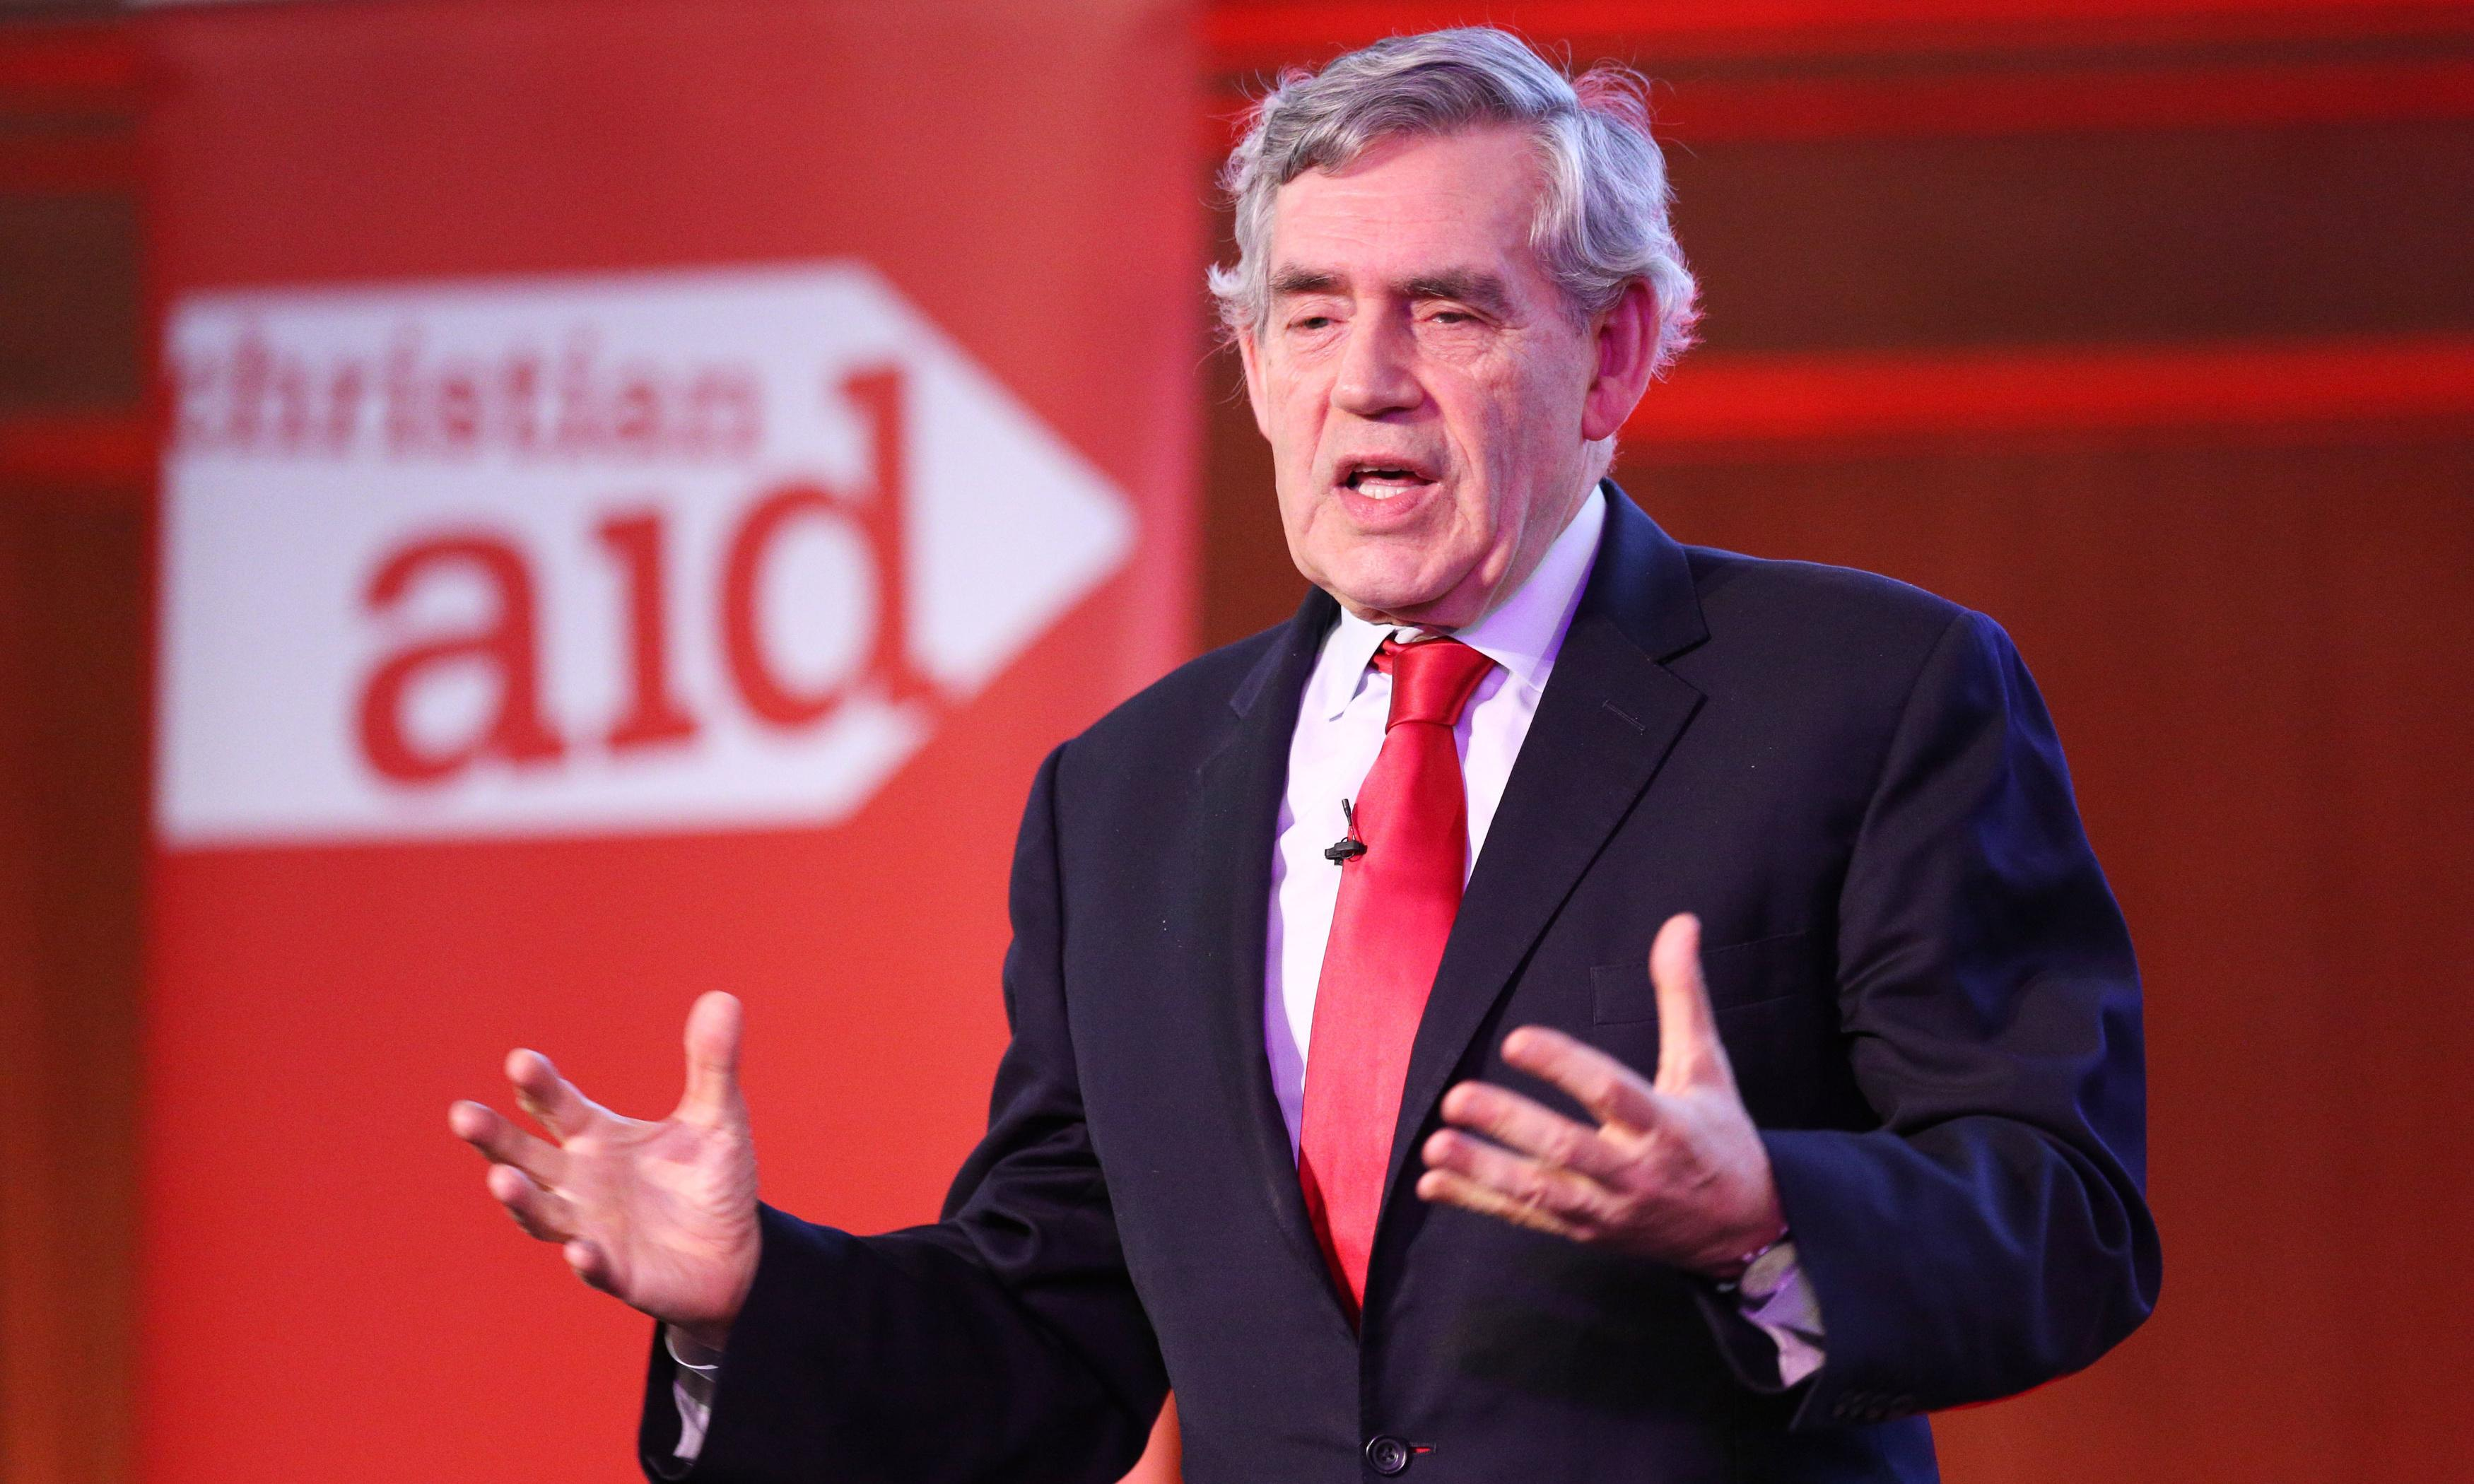 Reconciliation in UK could take a generation, says Gordon Brown